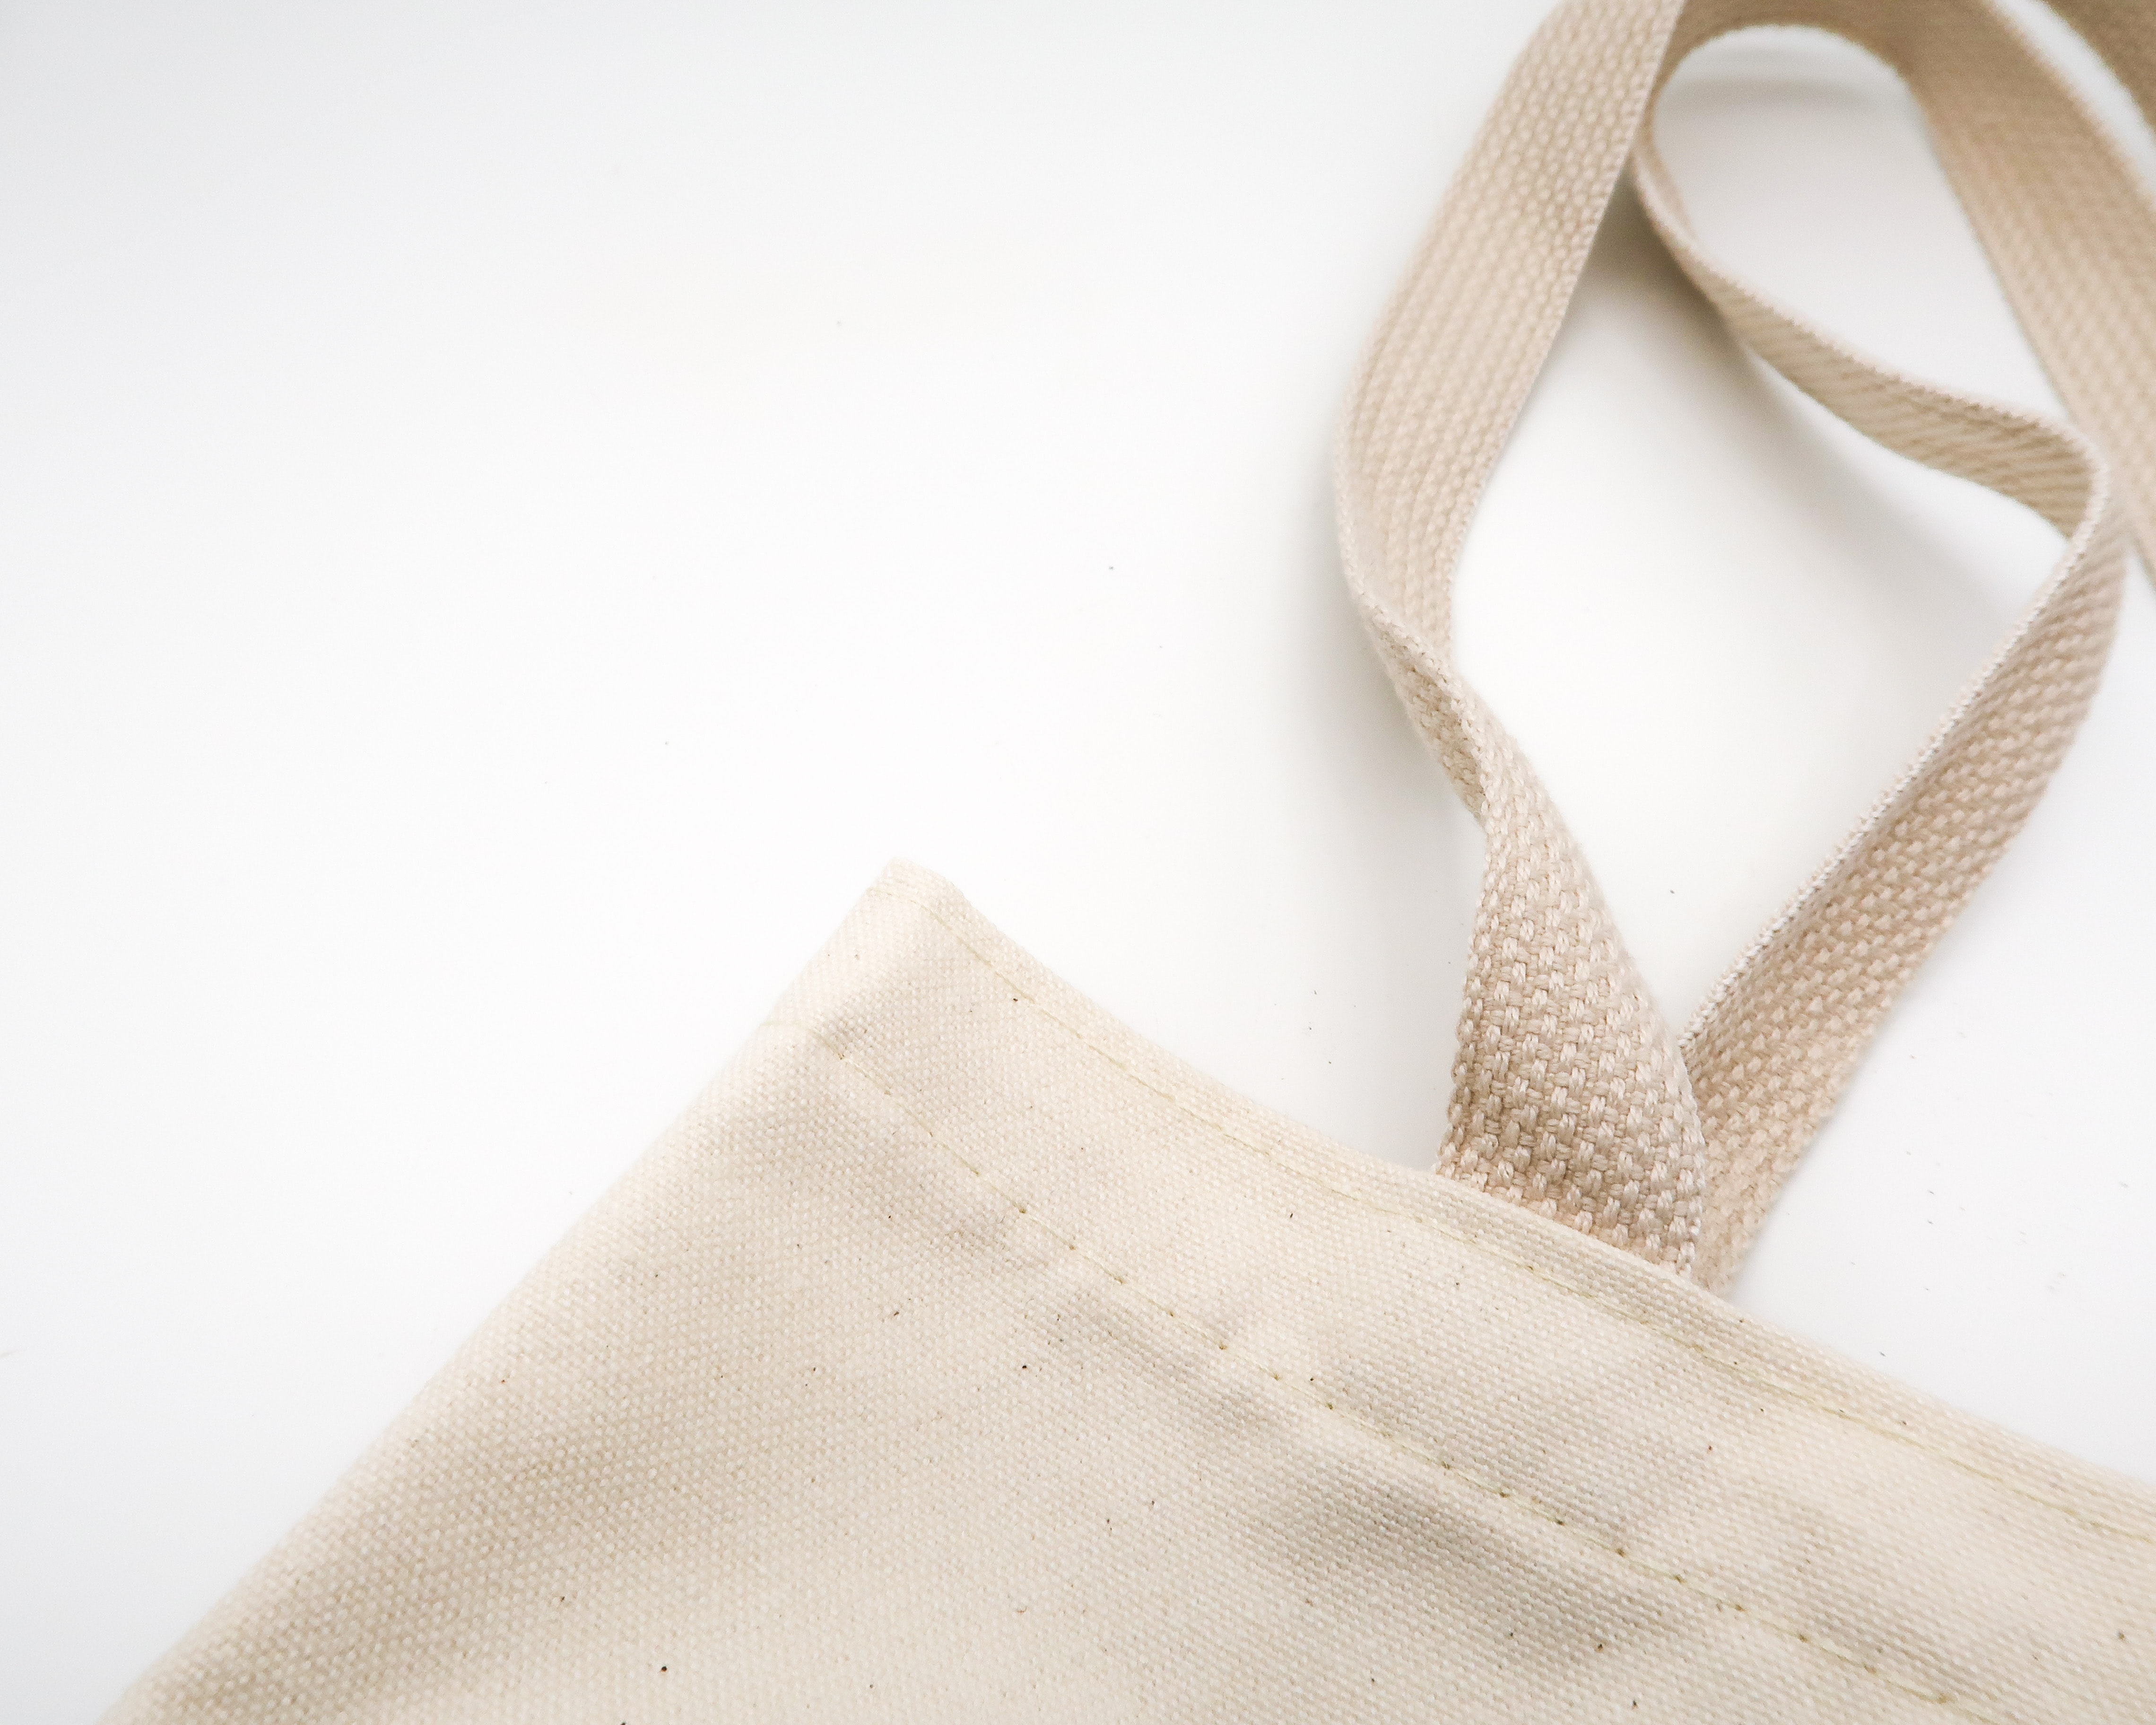 brown tote bag on white surface